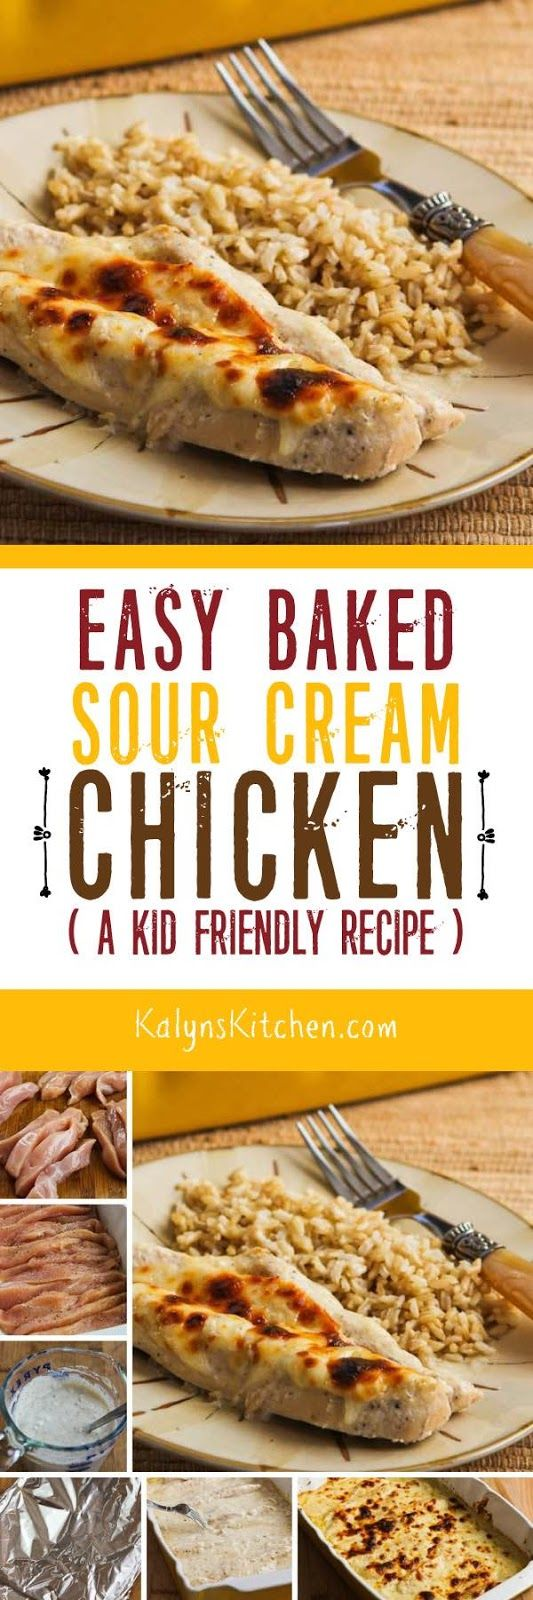 You won't find many recipes on my blog that use canned soup, but this Easy Baked Sour Cream Chicken is actually pretty darn delicious, and if you're cooking for kids this recipe is about as kid-friendly as you can find and it's low-glycemic and gluten-free for the adults! [found on KalynsKitchen.com]